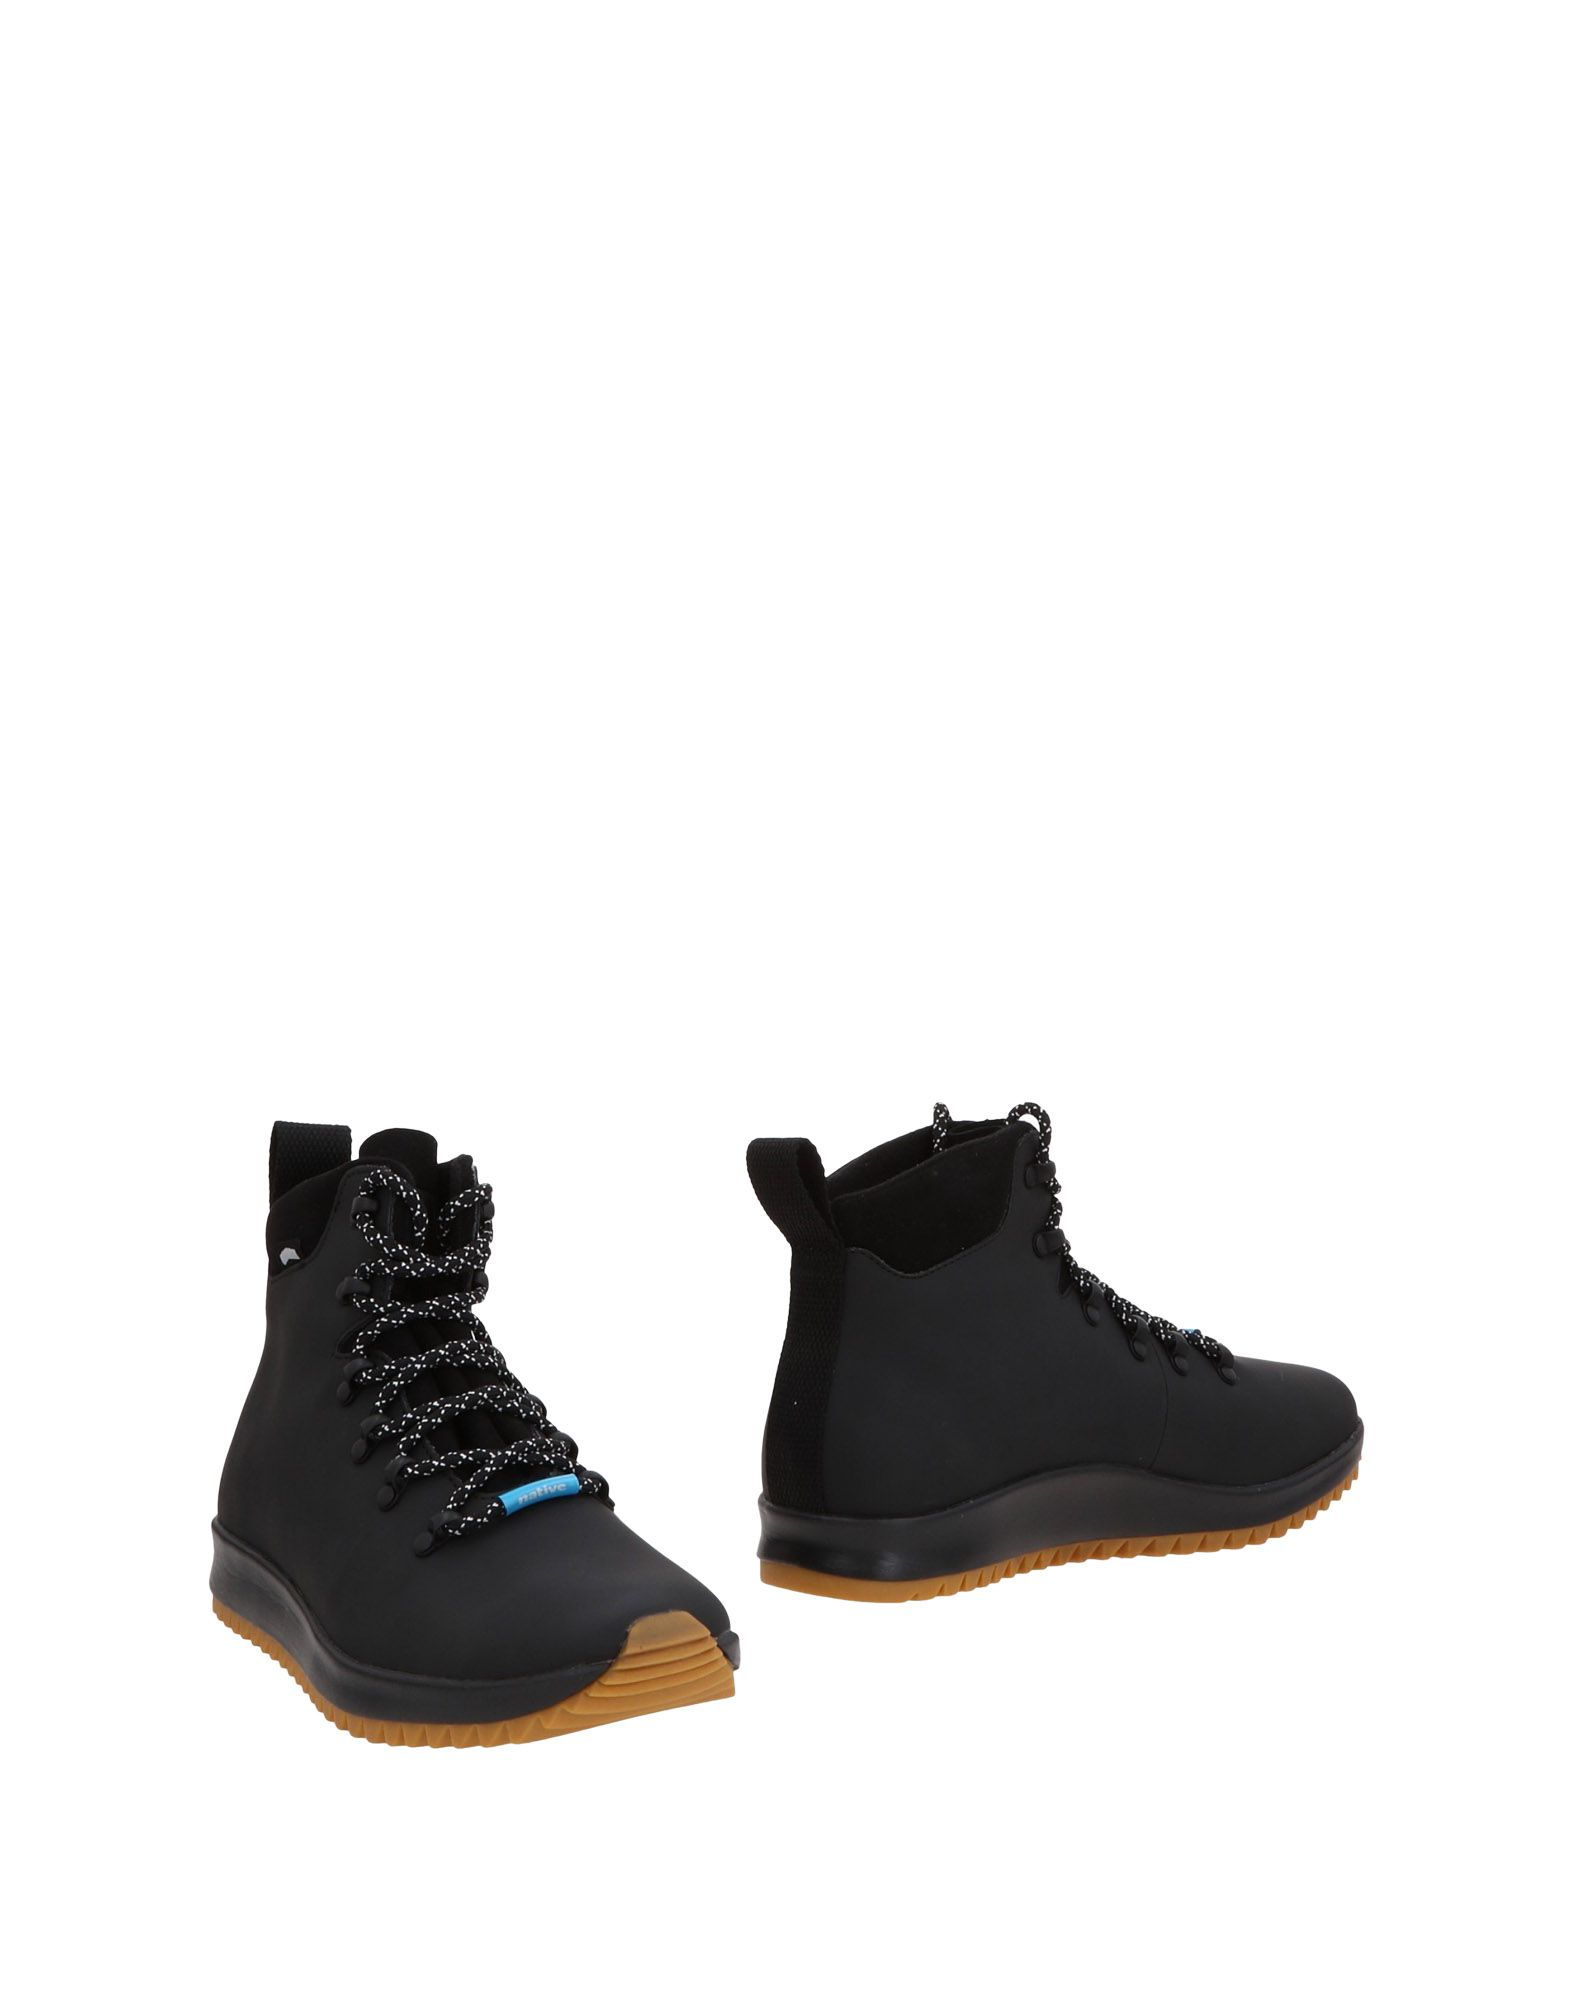 NATIVE Boots in Black